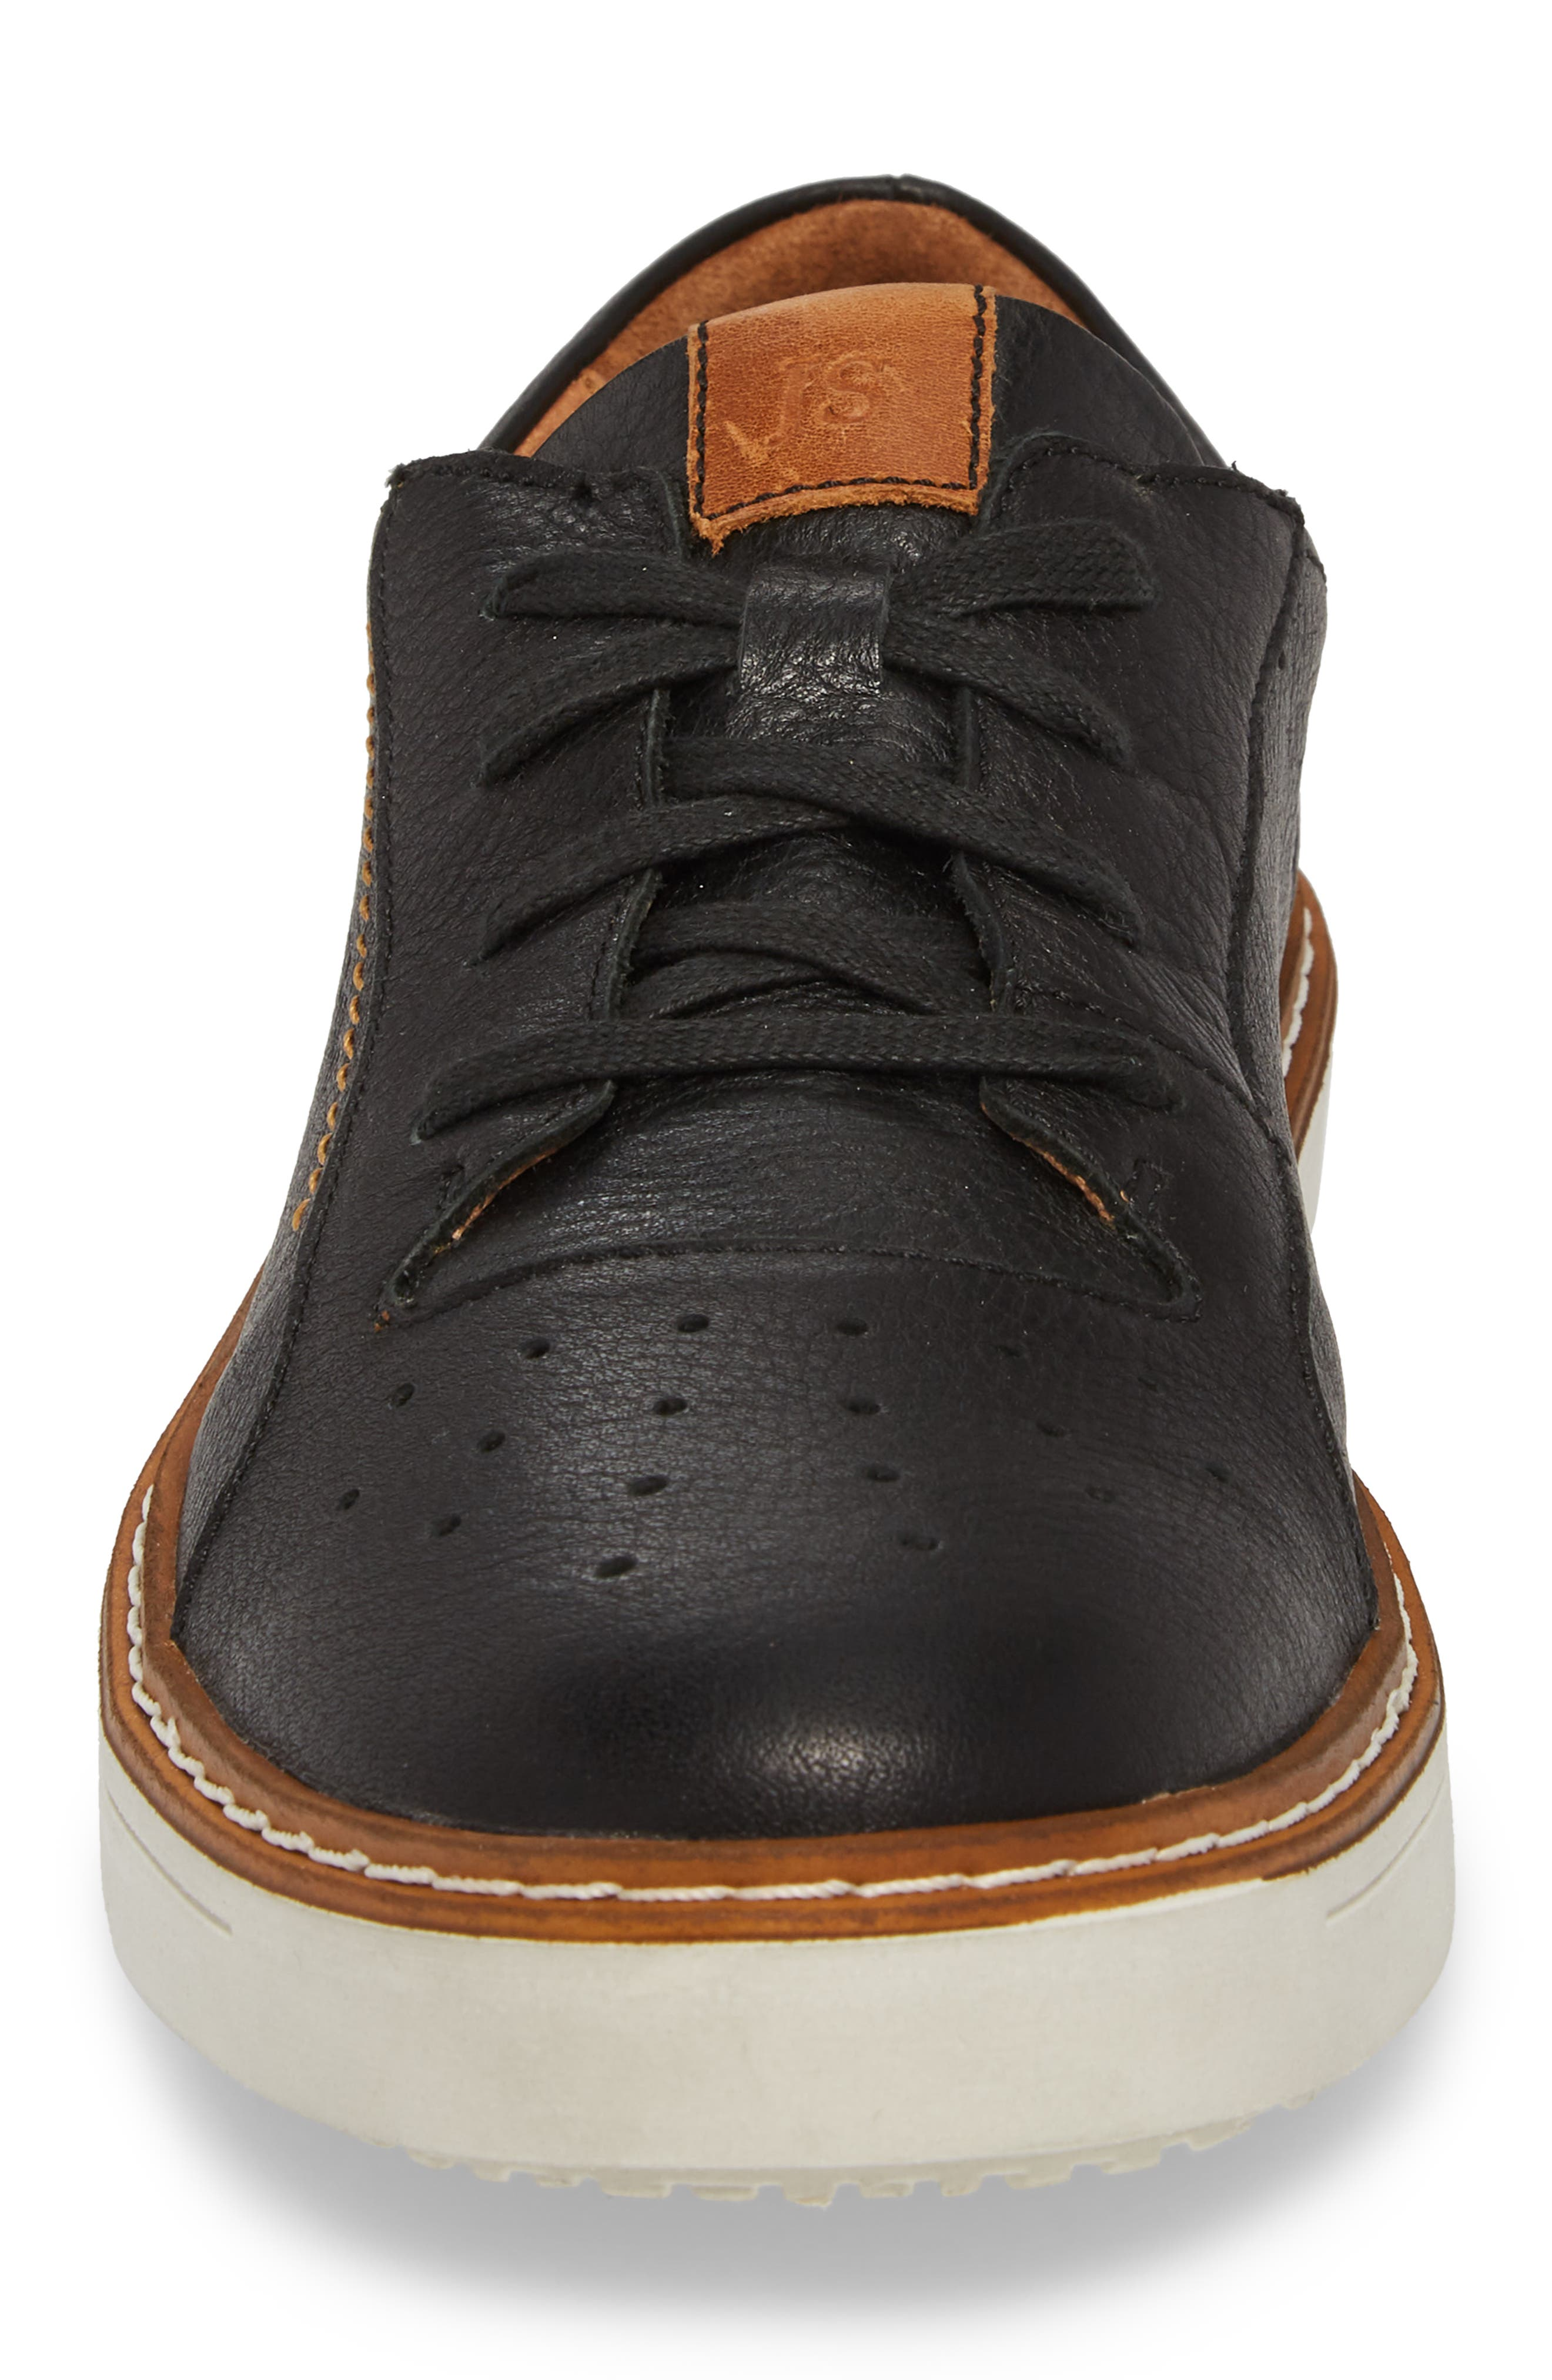 Quentin 03 Low Top Sneaker,                             Alternate thumbnail 4, color,                             BLACK KOMBI LEATHER